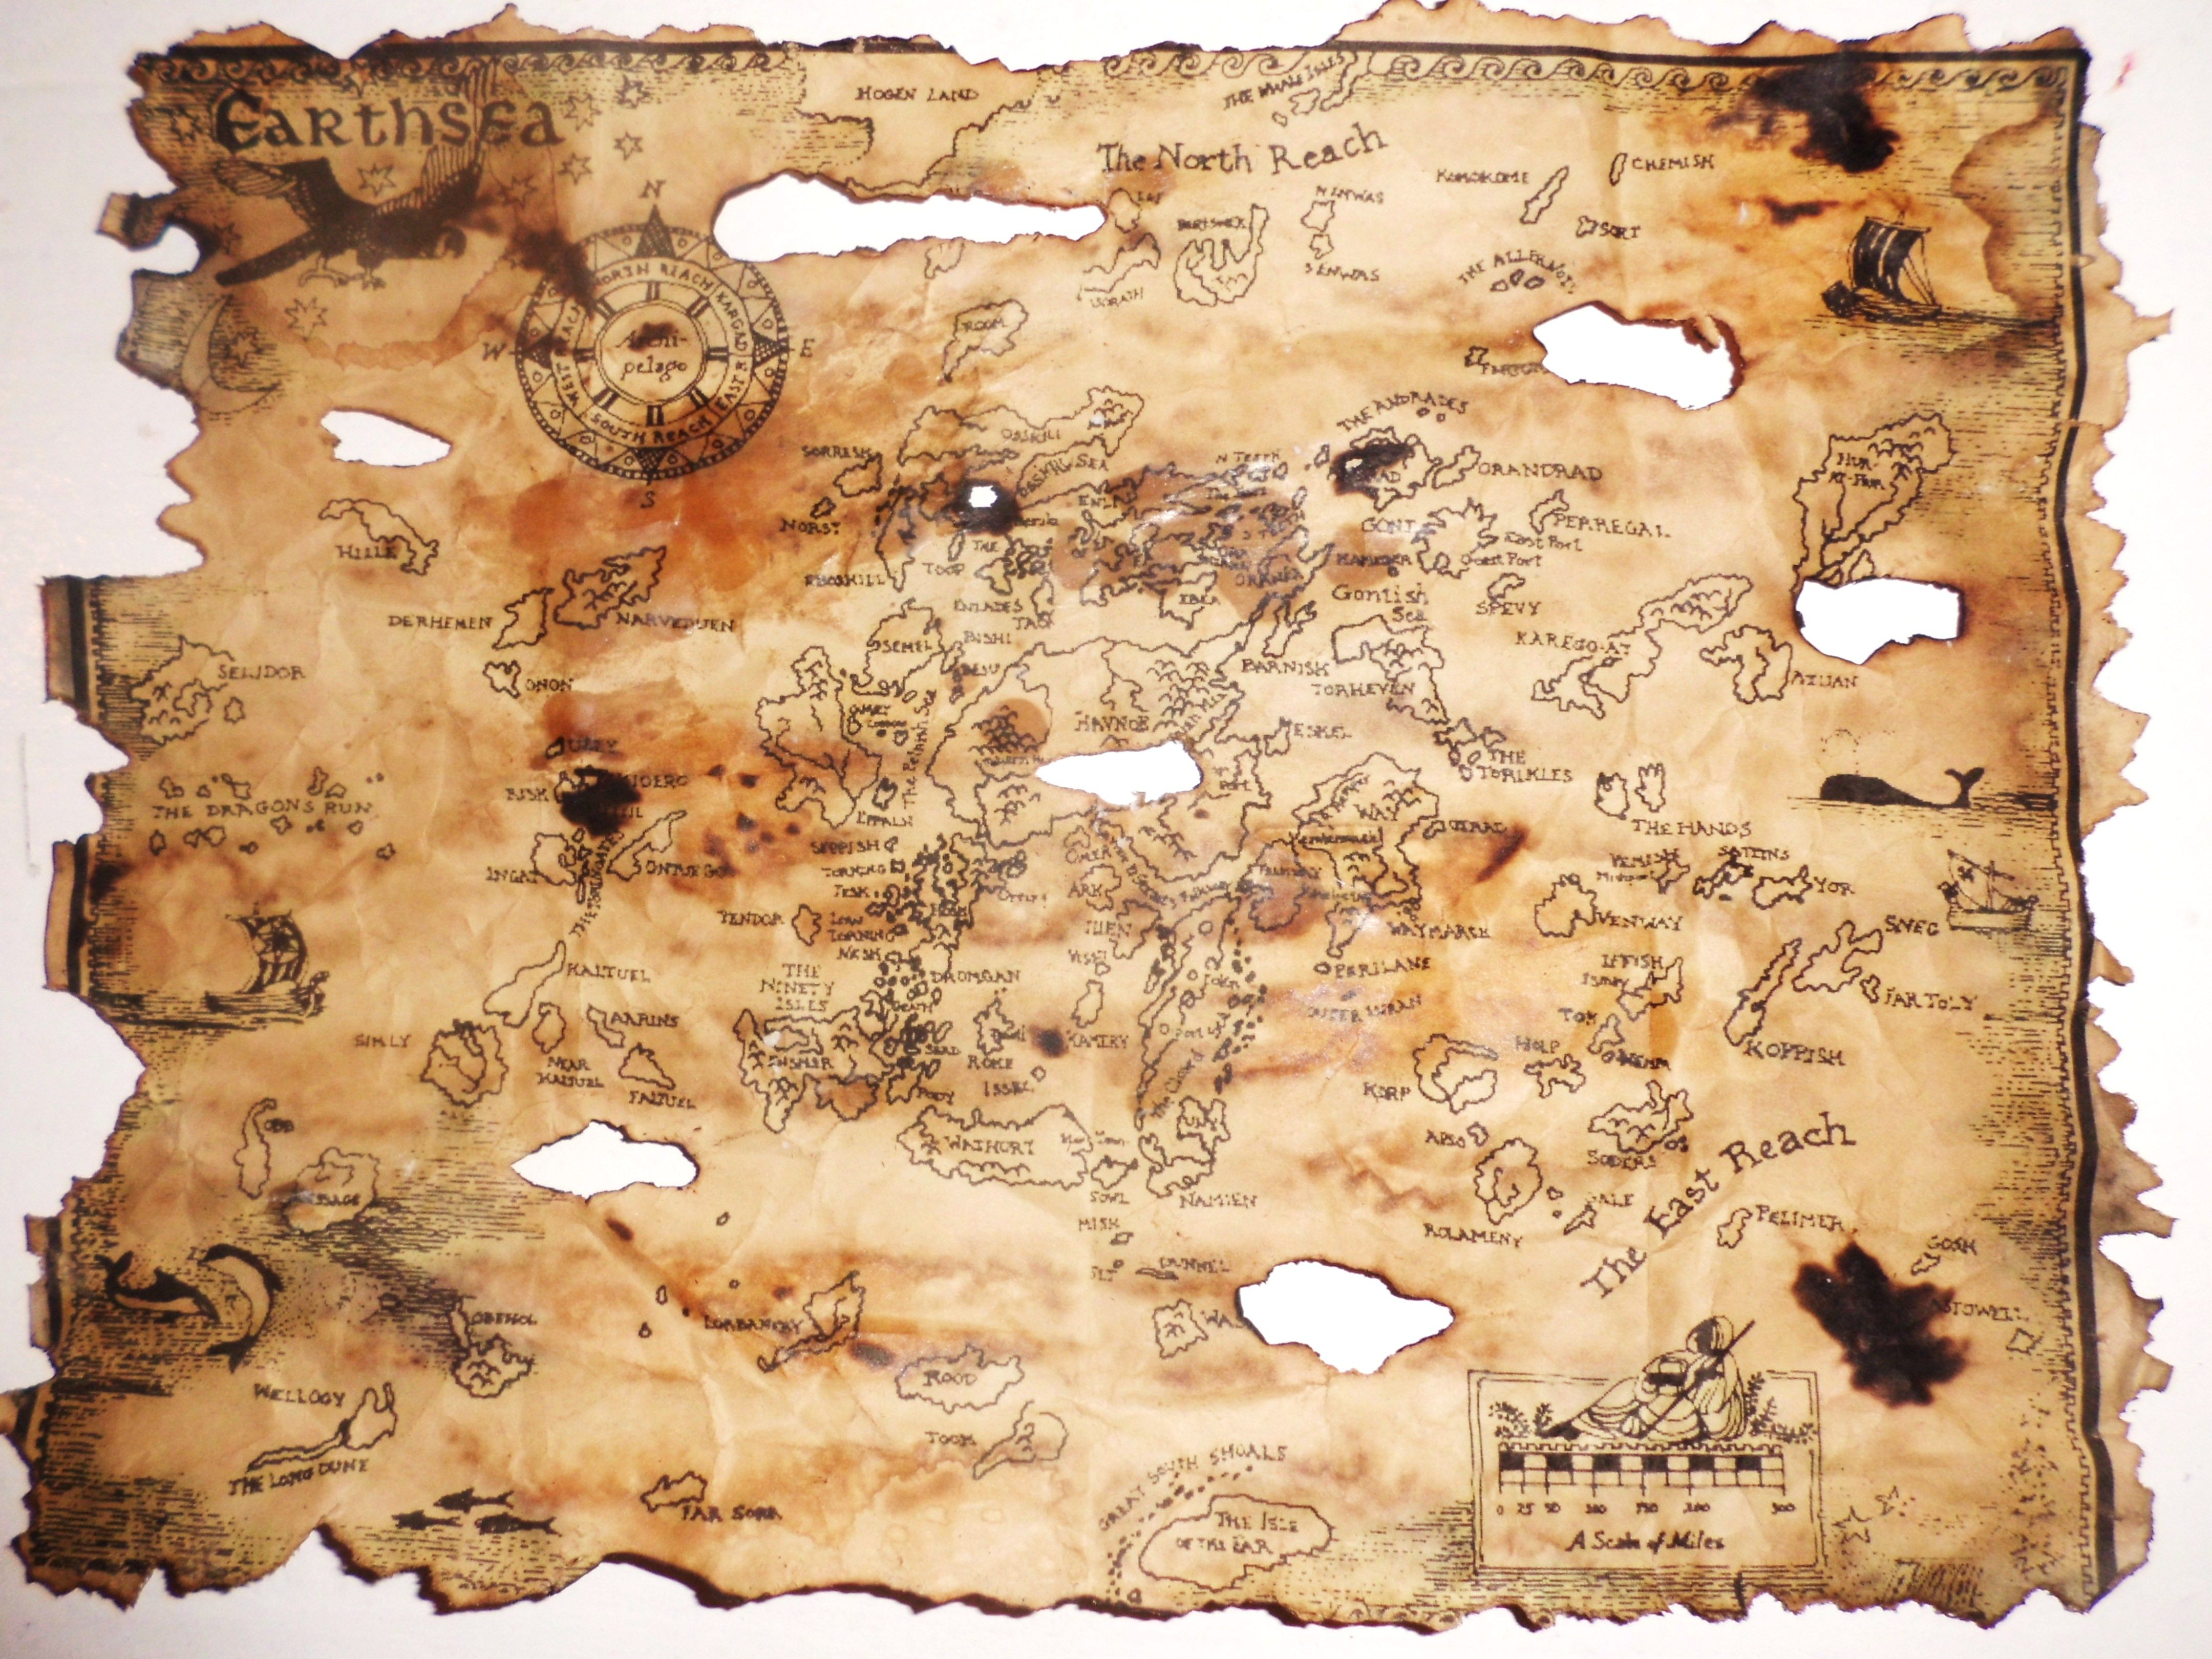 aged pirate map print approx  x  printed on regular paper aged withdifferent. aged pirate map print approx  x  printed on regular paper aged